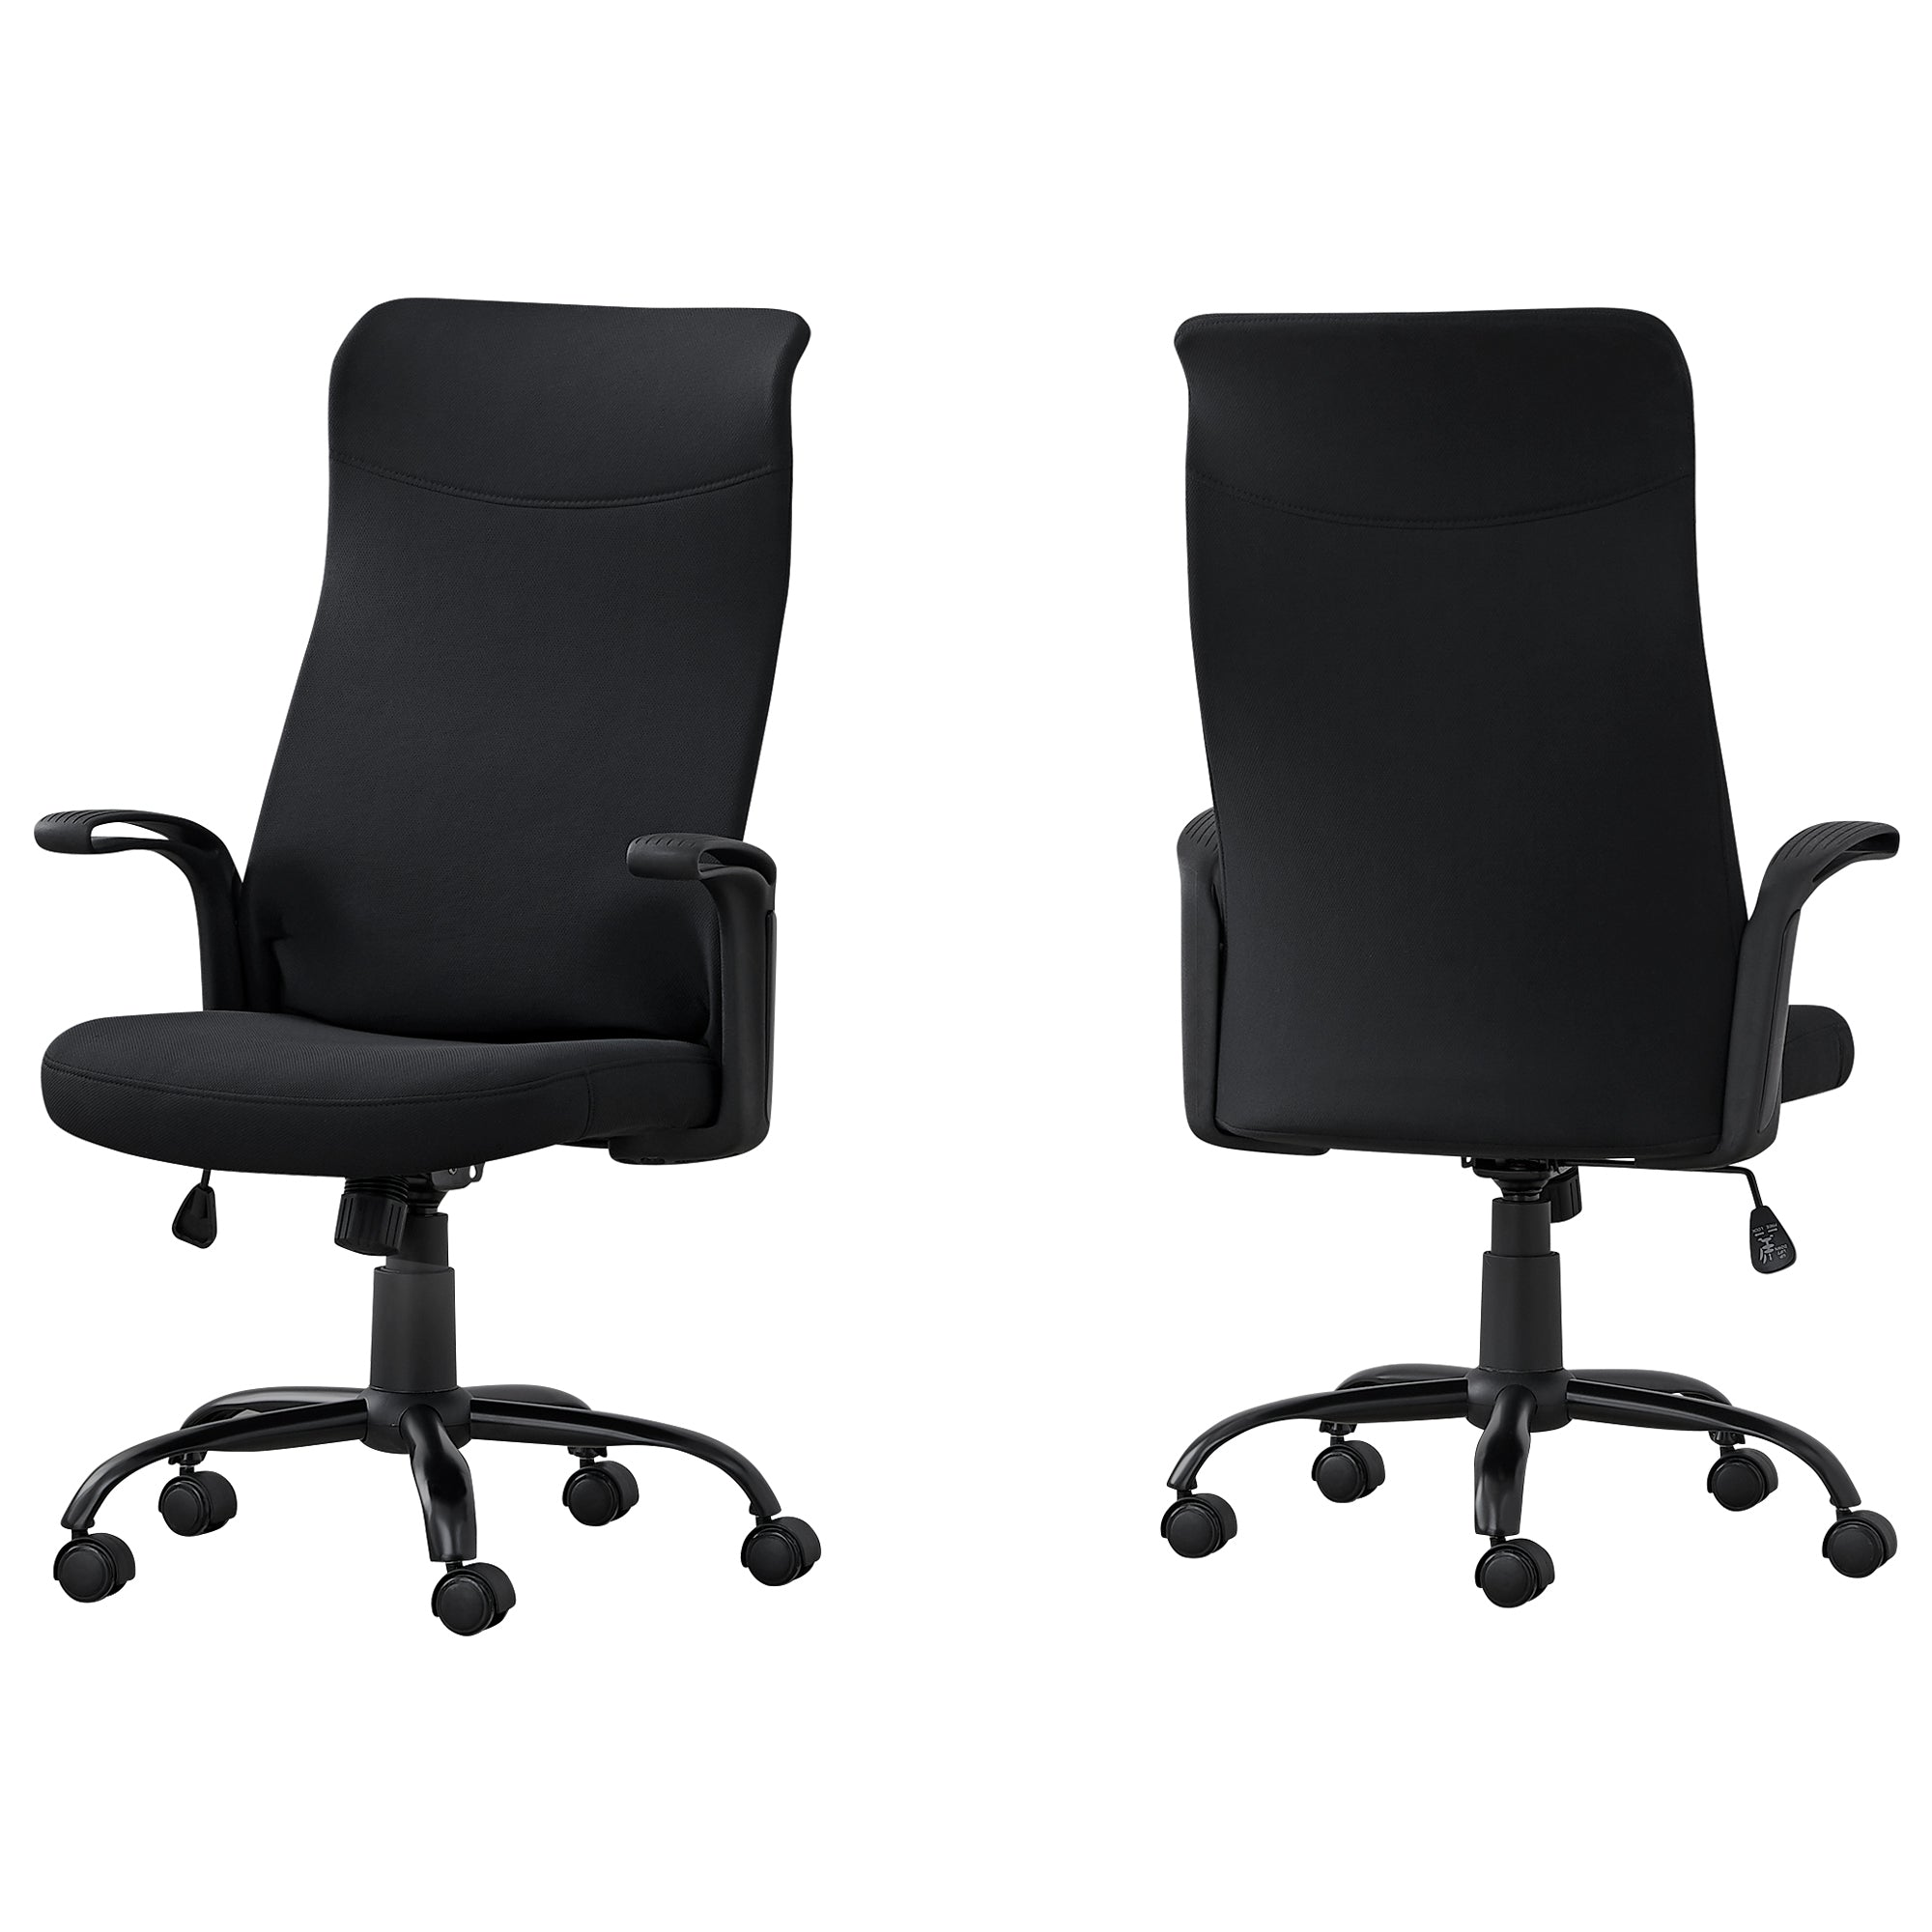 "24'.75"" x 24"" x 83'.5"" Black-Black, Fabric Multi Position - Office Chair"